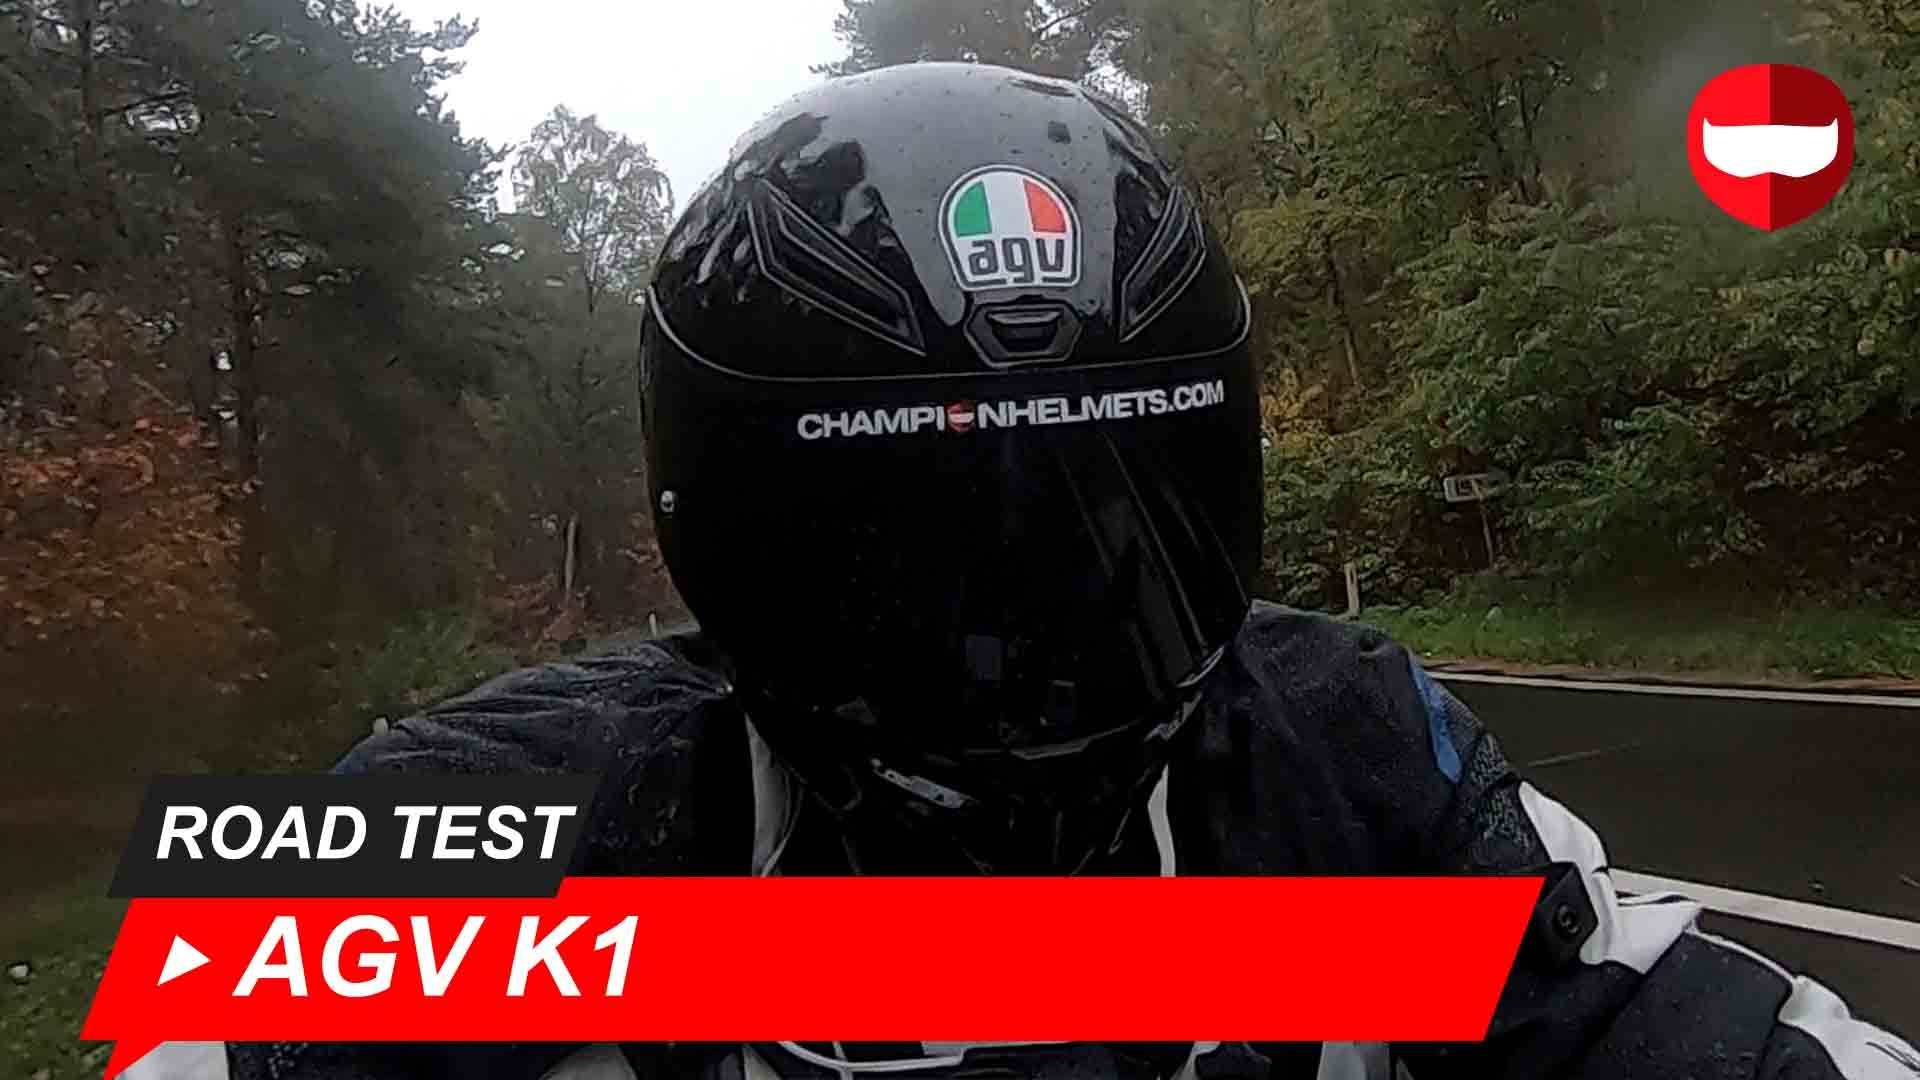 Agv K1 Road Test And Video Champion Helmets Motorcycle Gear